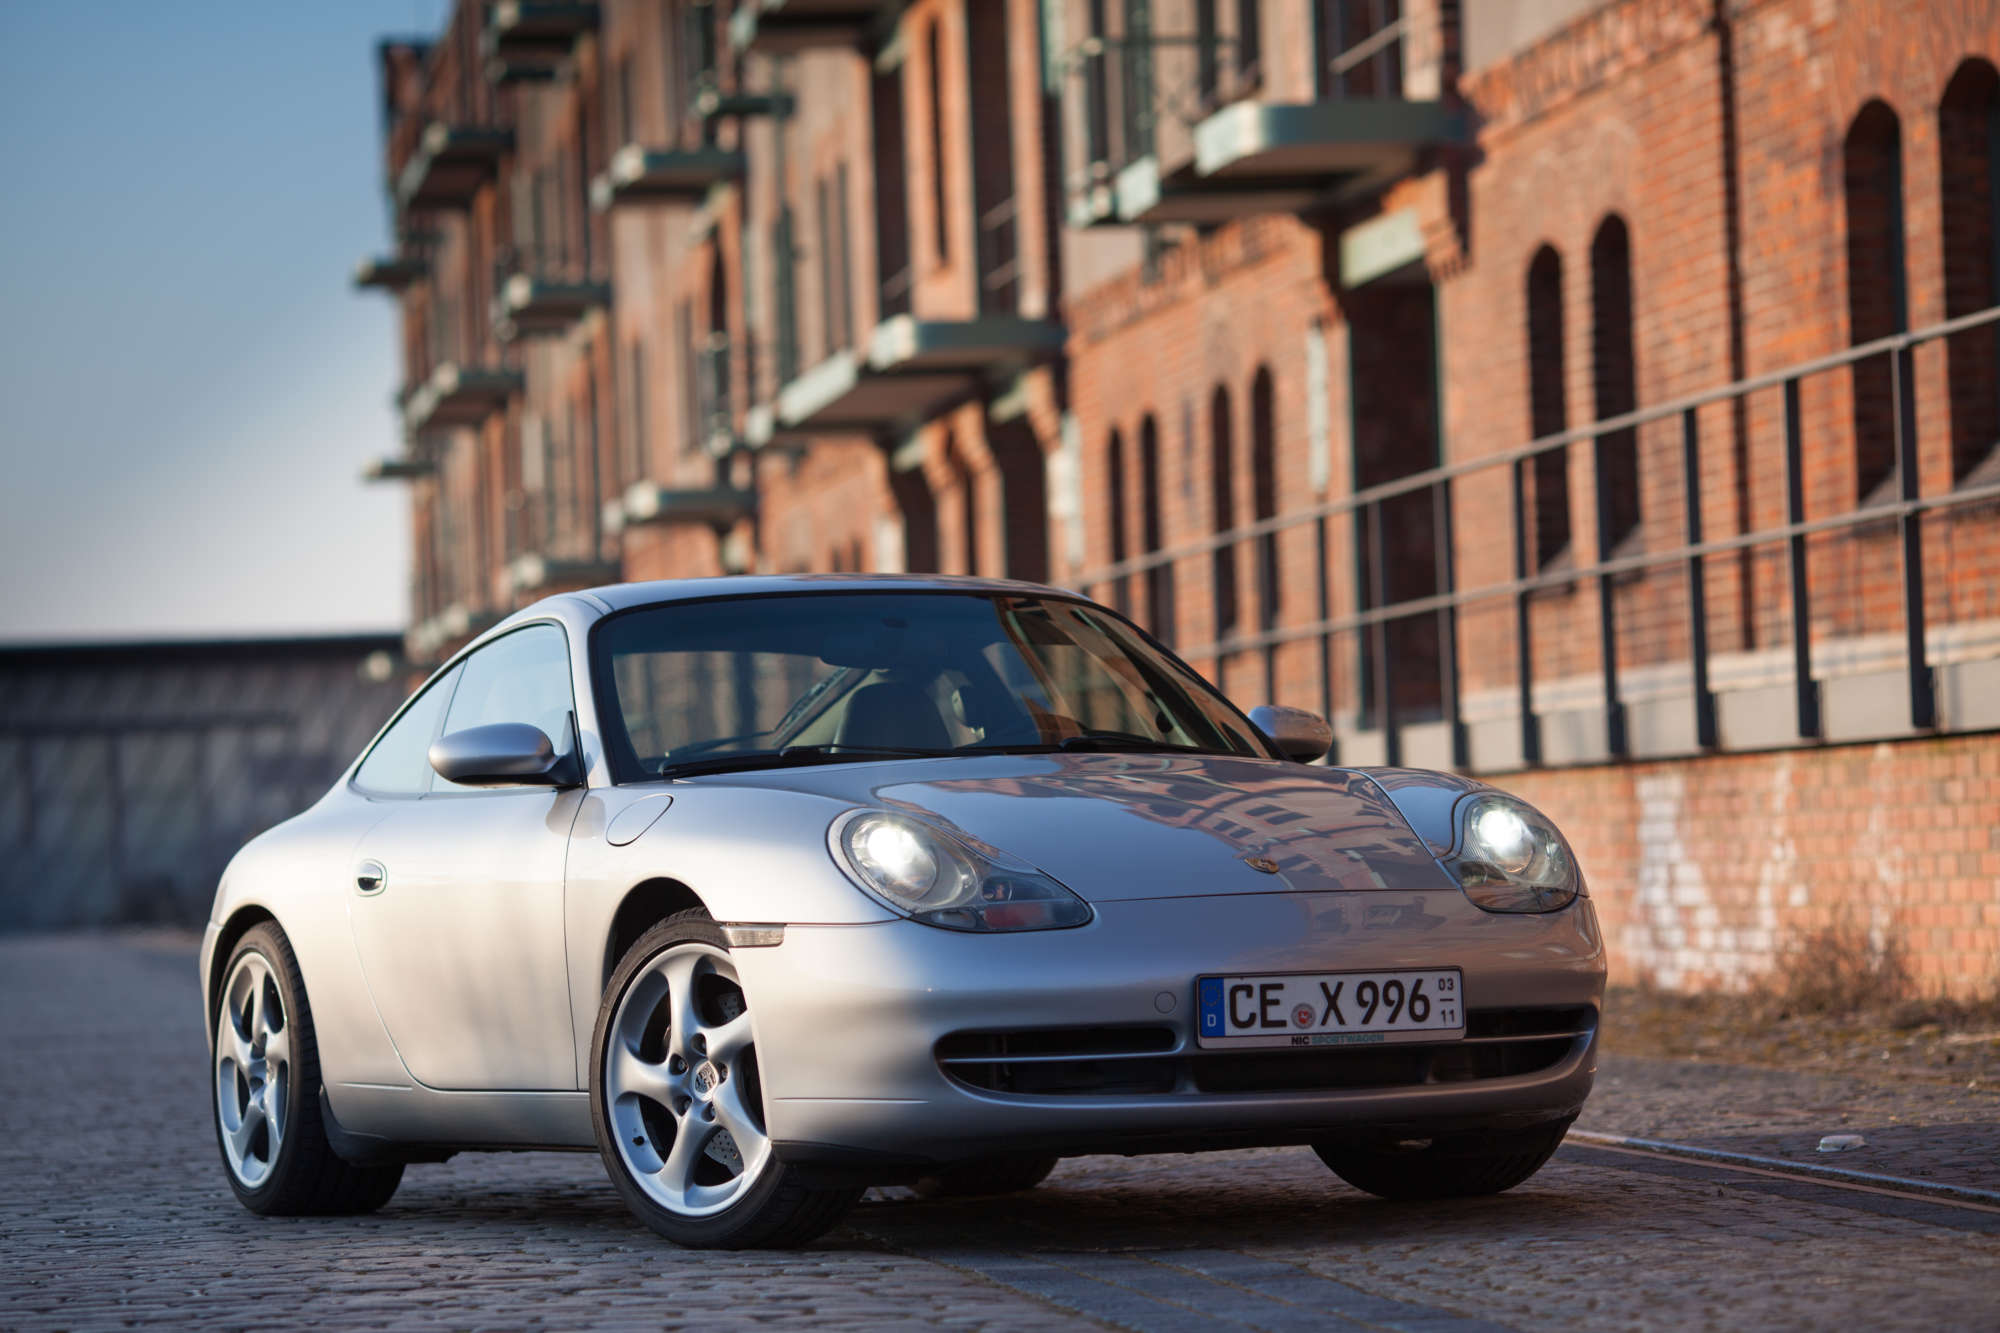 Buyer's Guide – The Porsche 996 Carrera 3.4